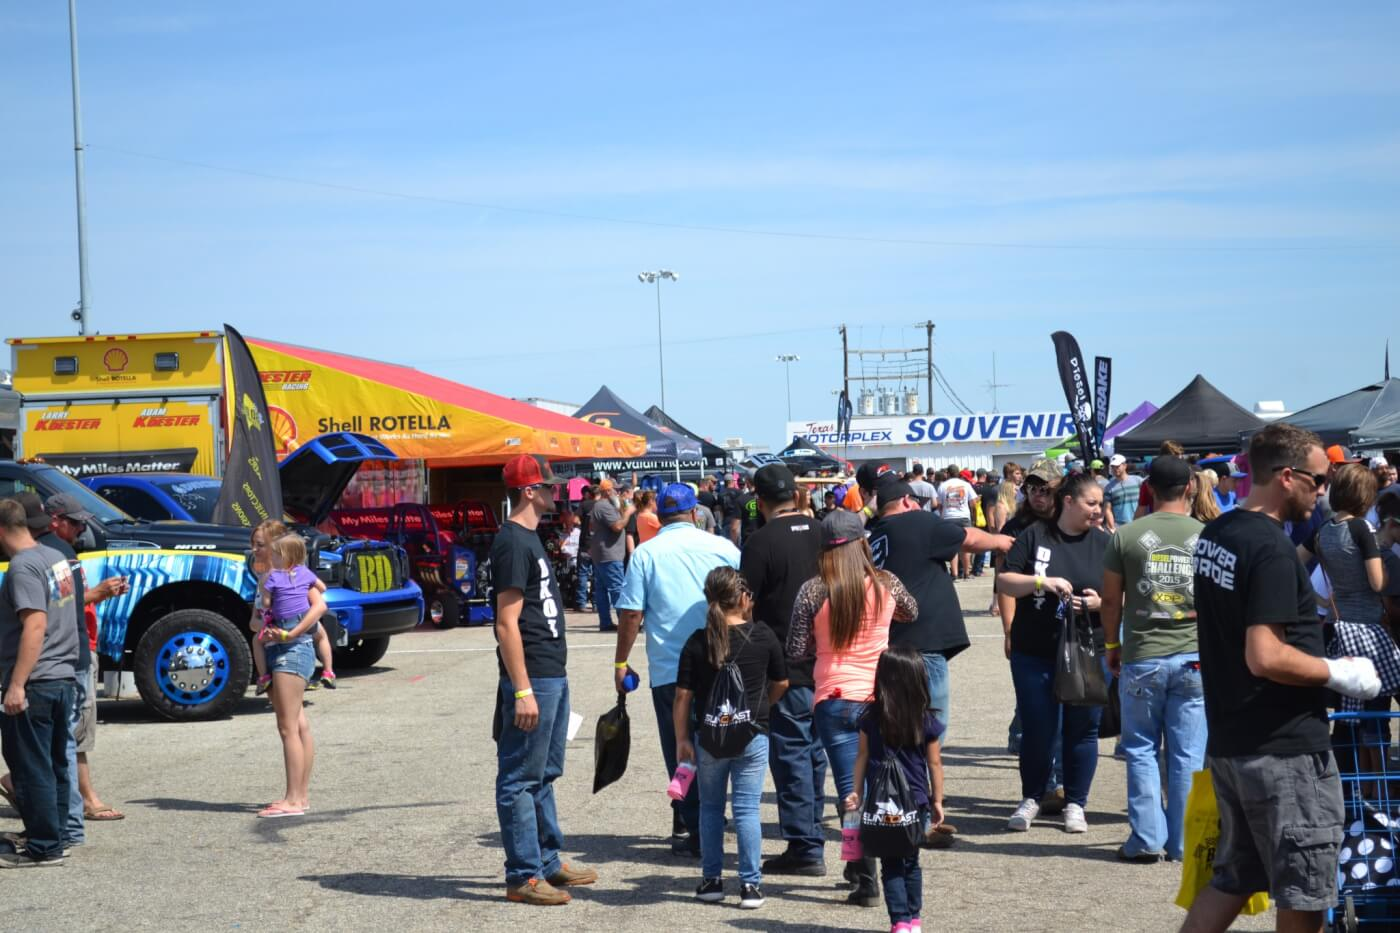 A big part of the World Finals is the Vendor area, which hosts a number of companies who are big on diesel performance. There was BD Power, Shell, Fleece Performance, Suncoast Diesel Transmissions, Pacbrake, Valair, and a host of other companies in attendance with the latest and greatest products designed for diesel pickups.